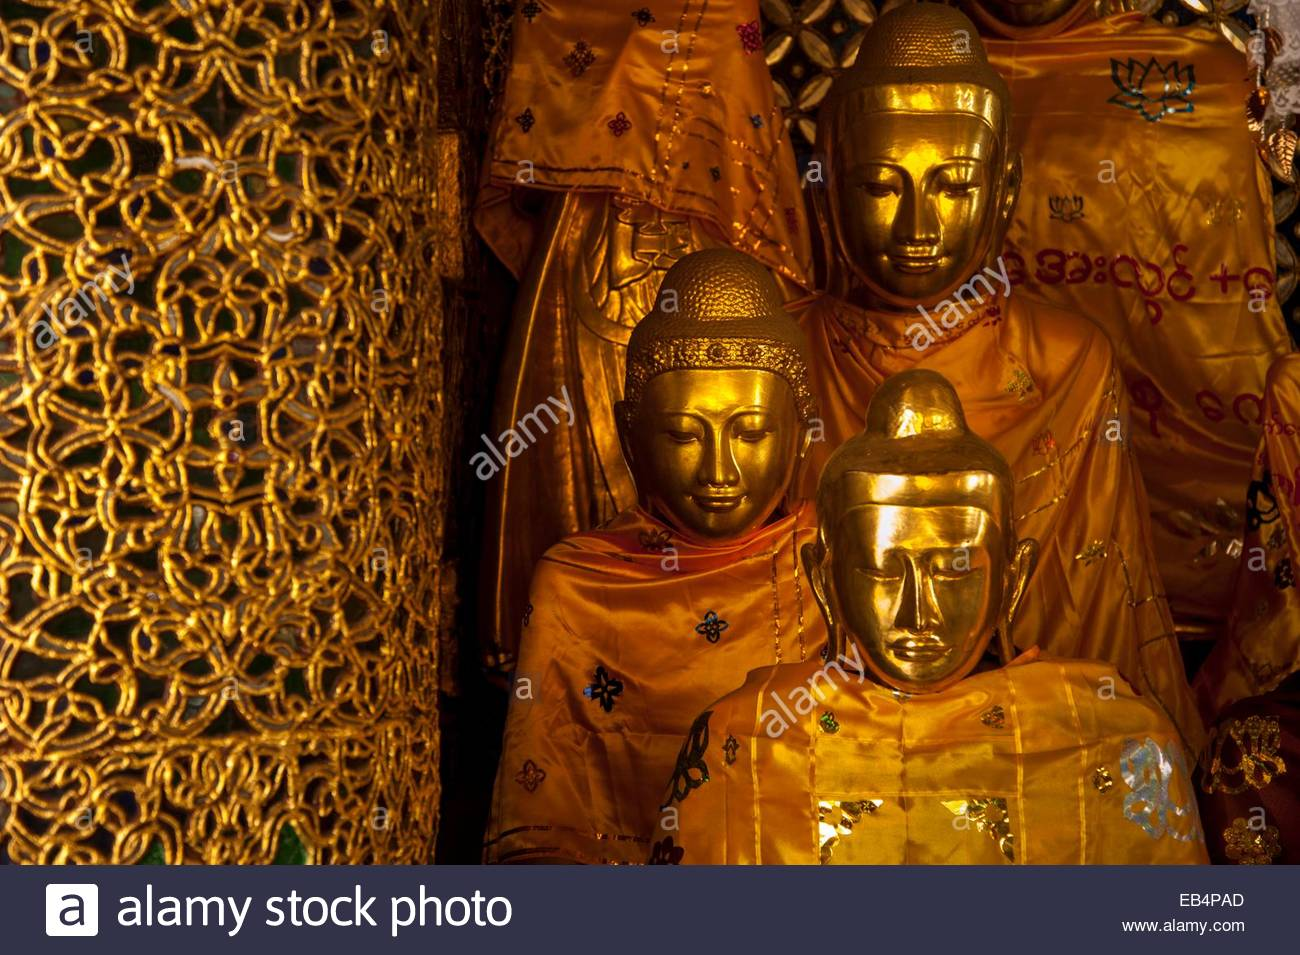 Statues of Buddha draped in saffron robes. - Stock Image